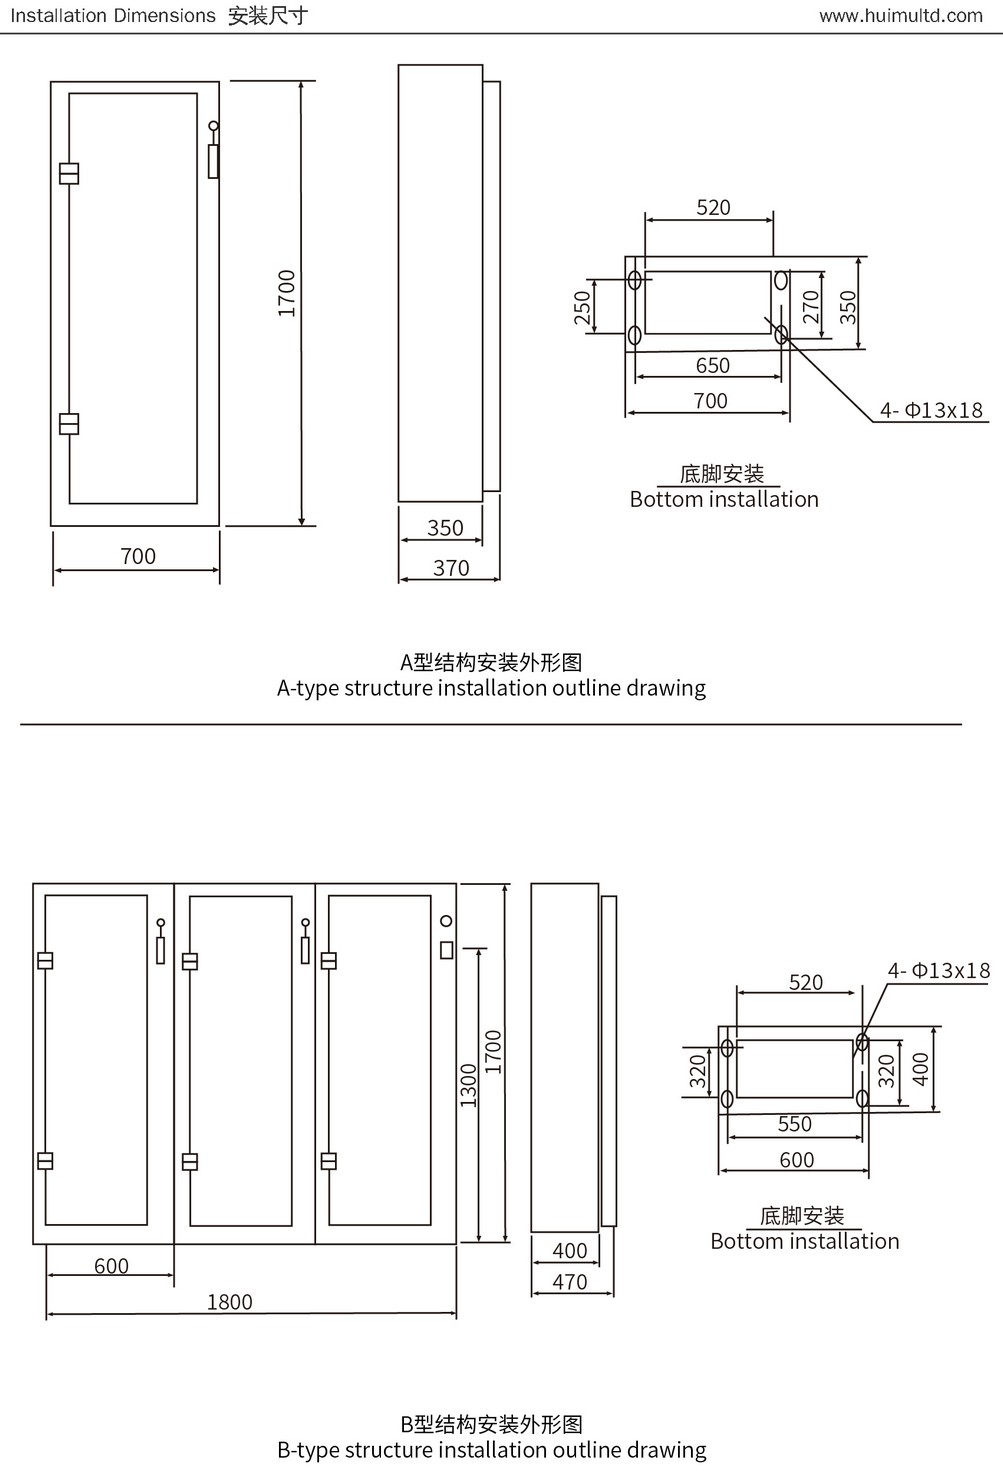 XL-21 Series Appearance and mounting dimensions